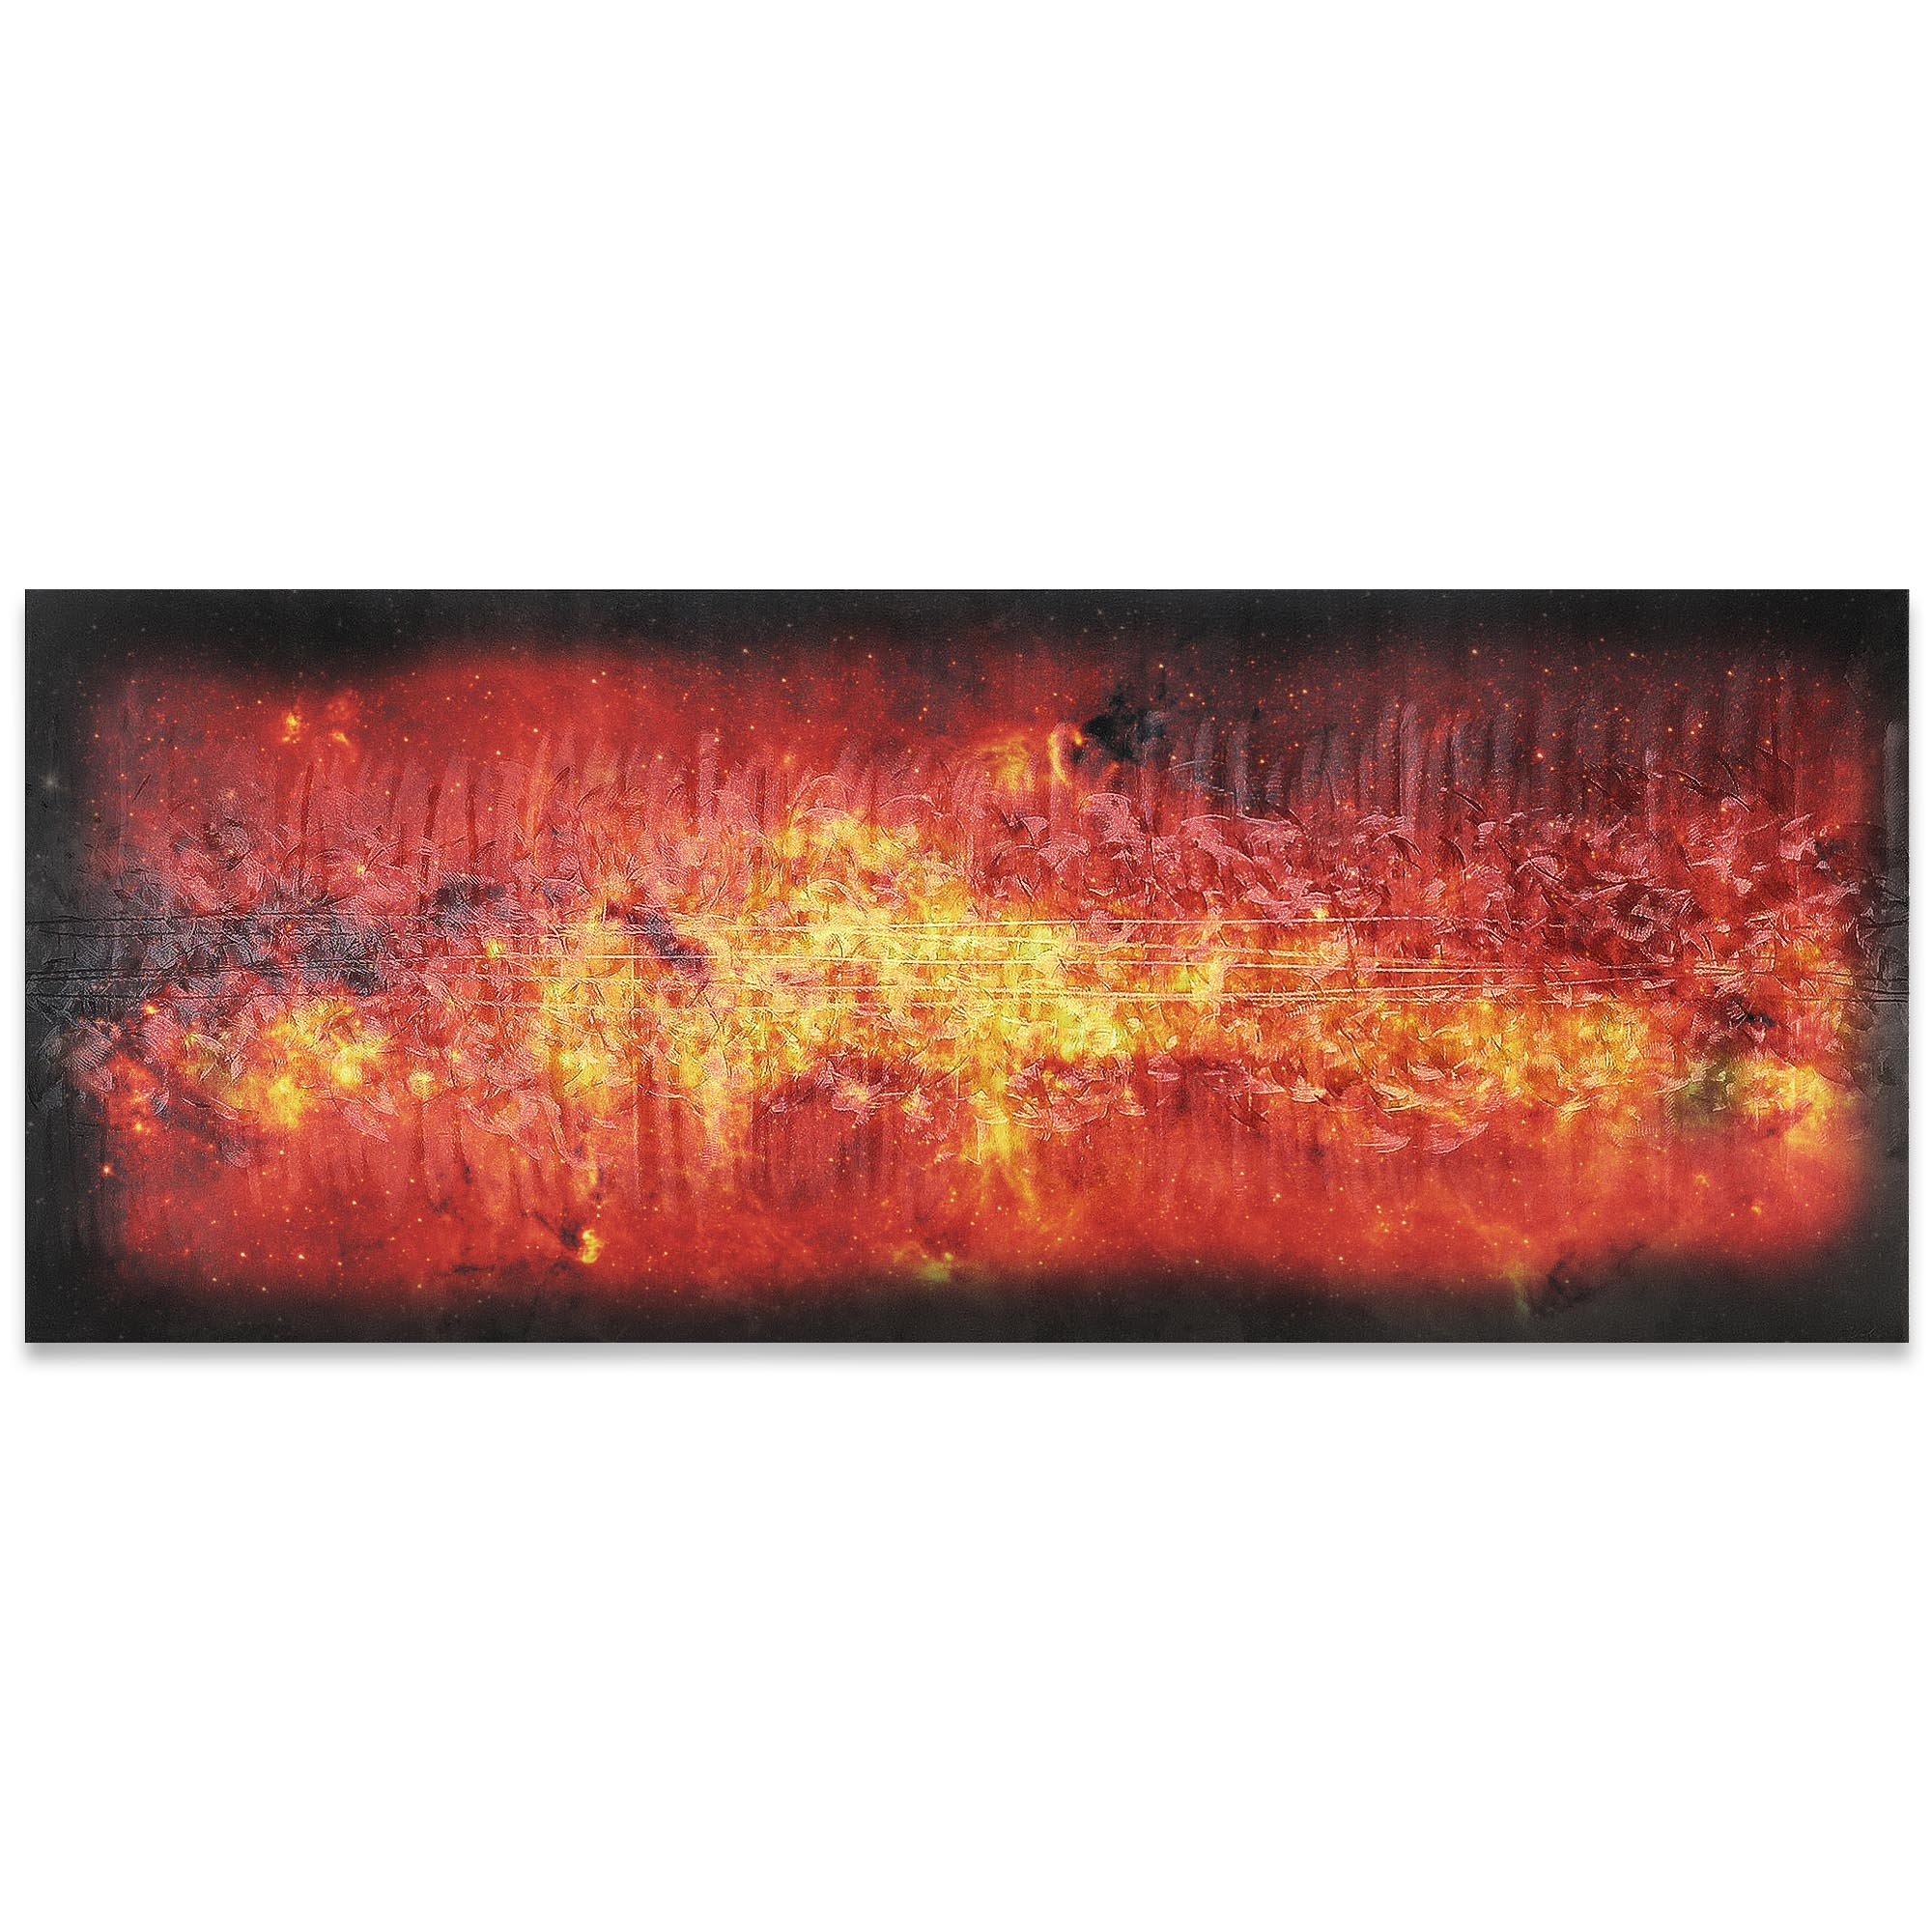 Helena Martin 'Milky Way Flame' 60in x 24in Original Abstract Art on Ground and Colored Metal